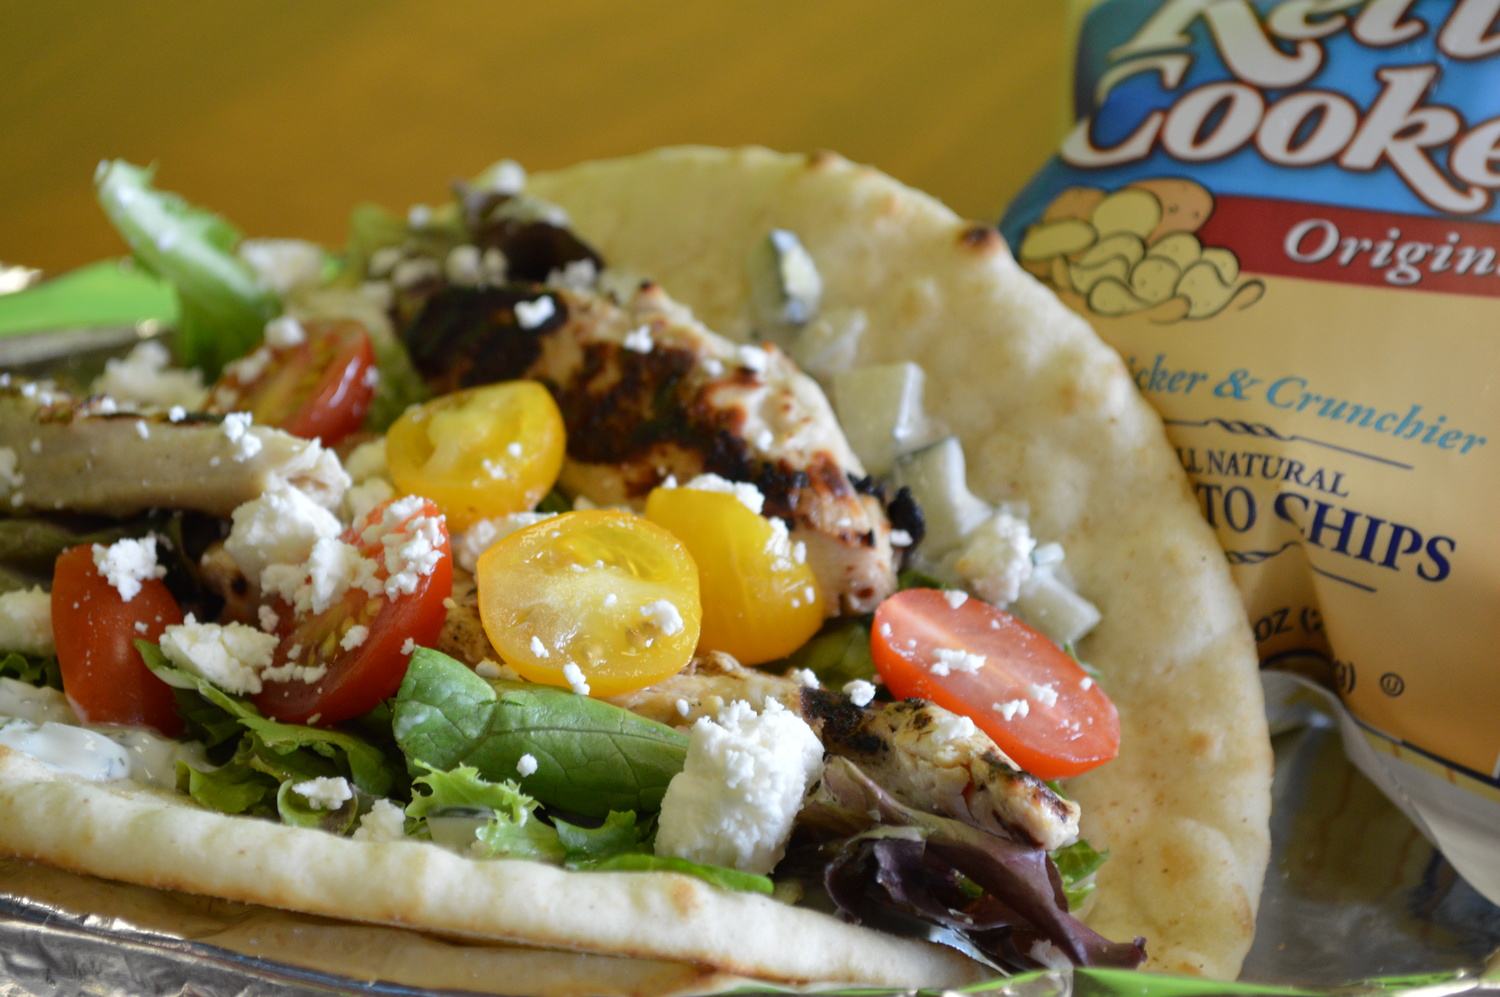 Our City Chicken Pita - With over 33 grams of protein, the City is the most popular item, 6 years running.